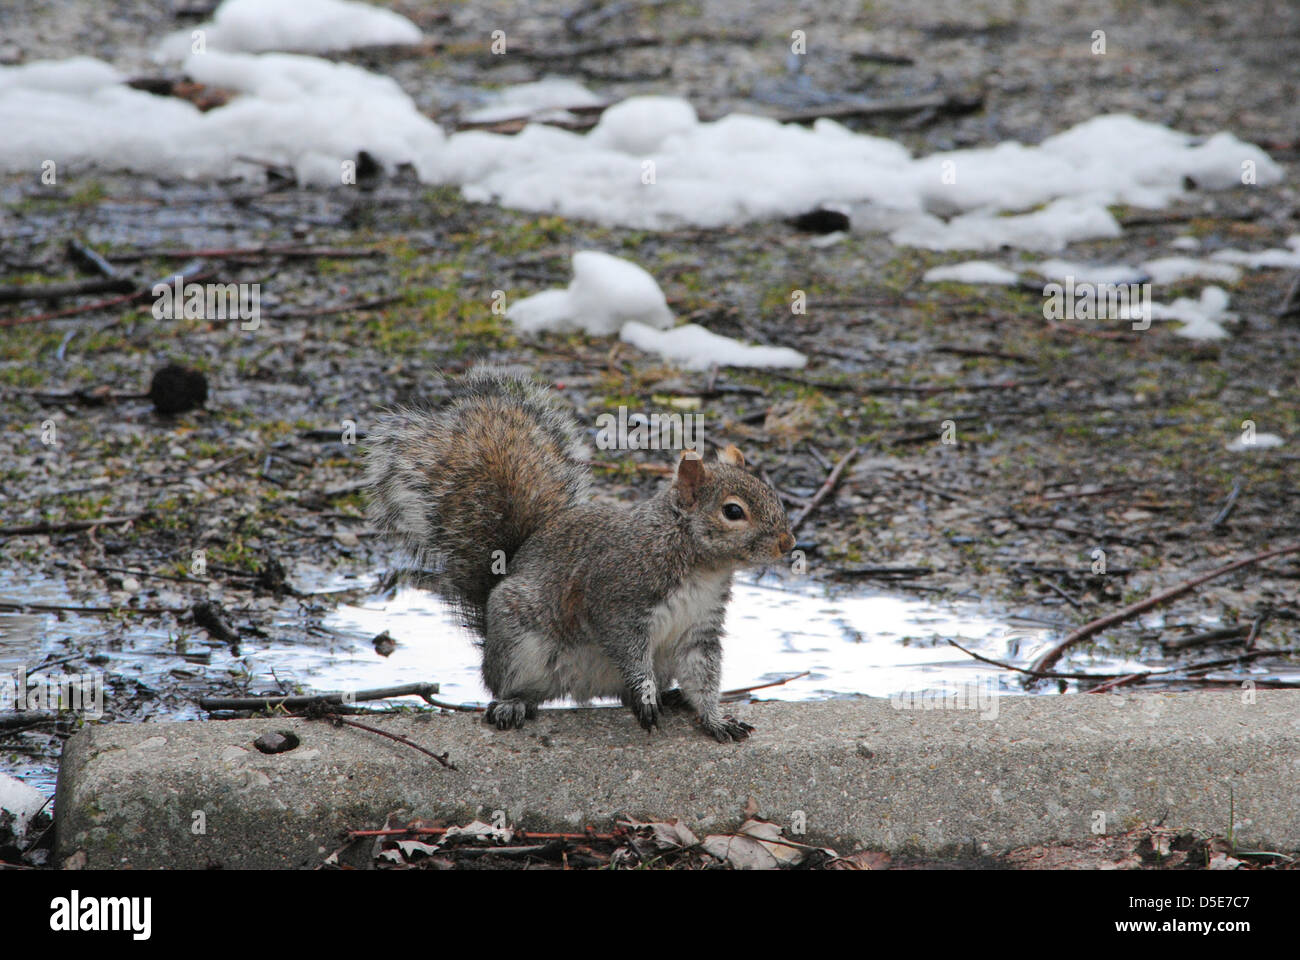 Tree squirrel,profiles,on a concrete parking block,during,a soggy 'late-winter' day. Stock Photo